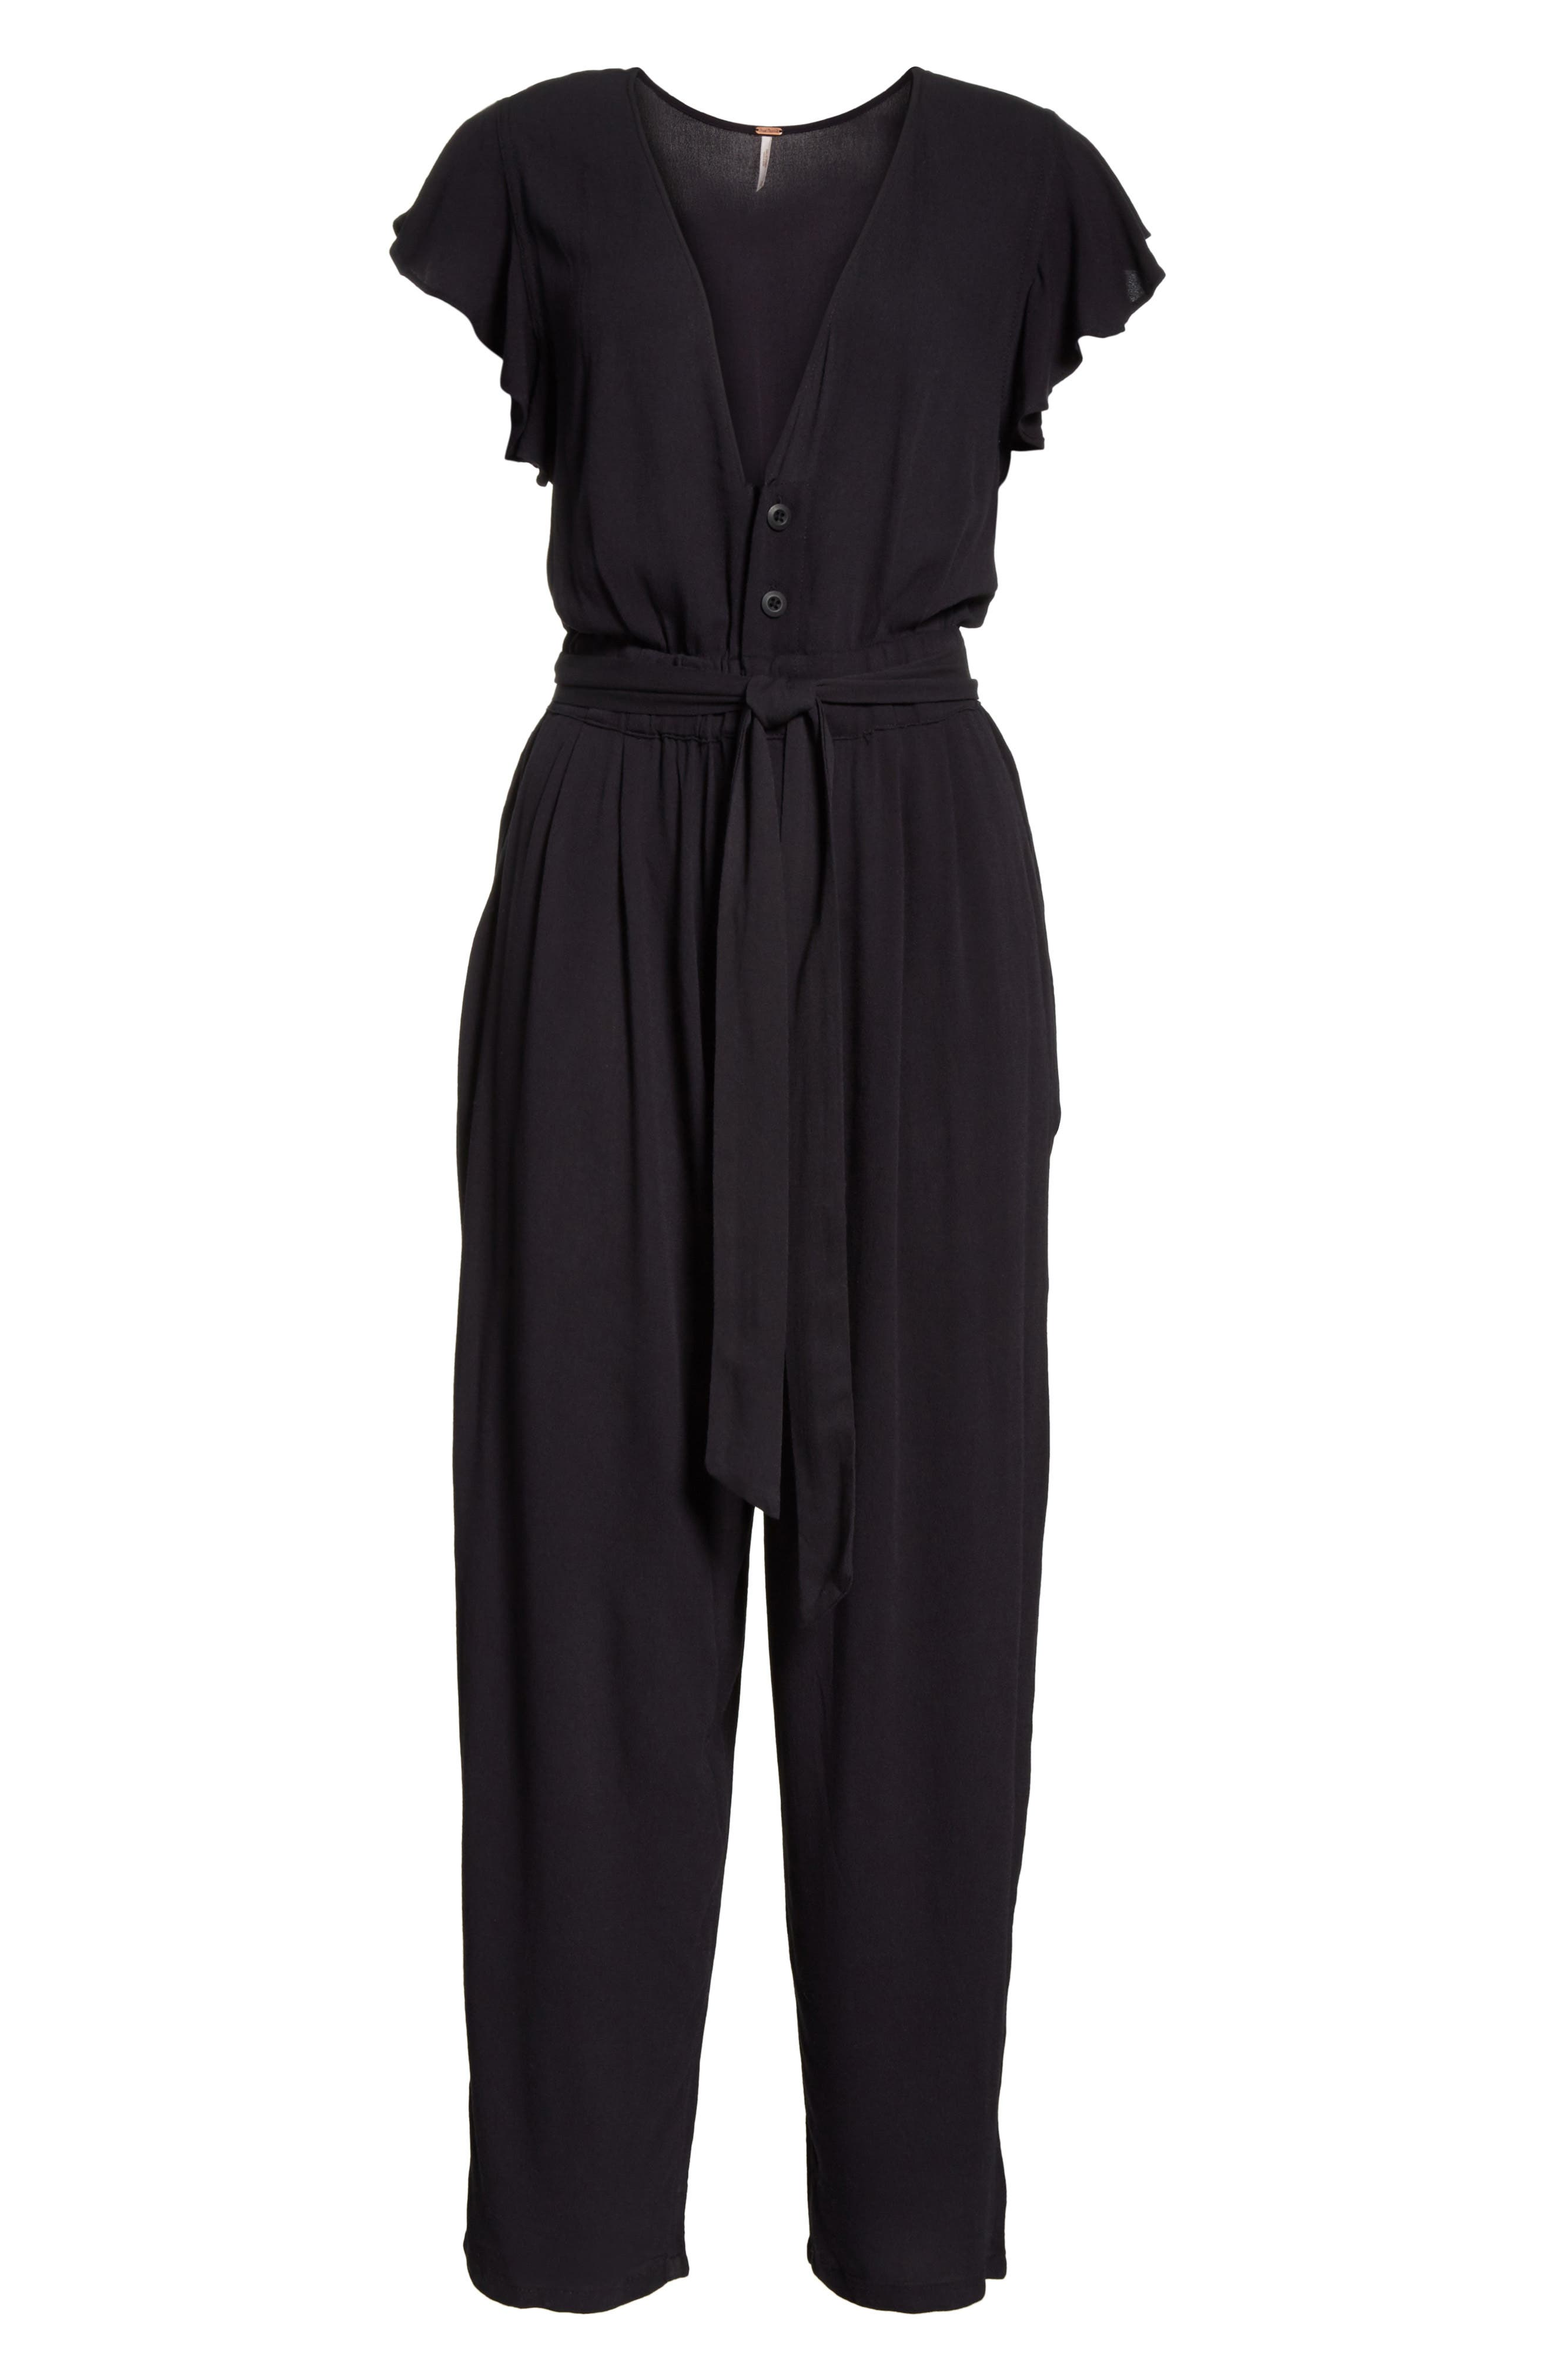 FREE PEOPLE,                             Ruffle Your Feather Jumpsuit,                             Alternate thumbnail 6, color,                             001